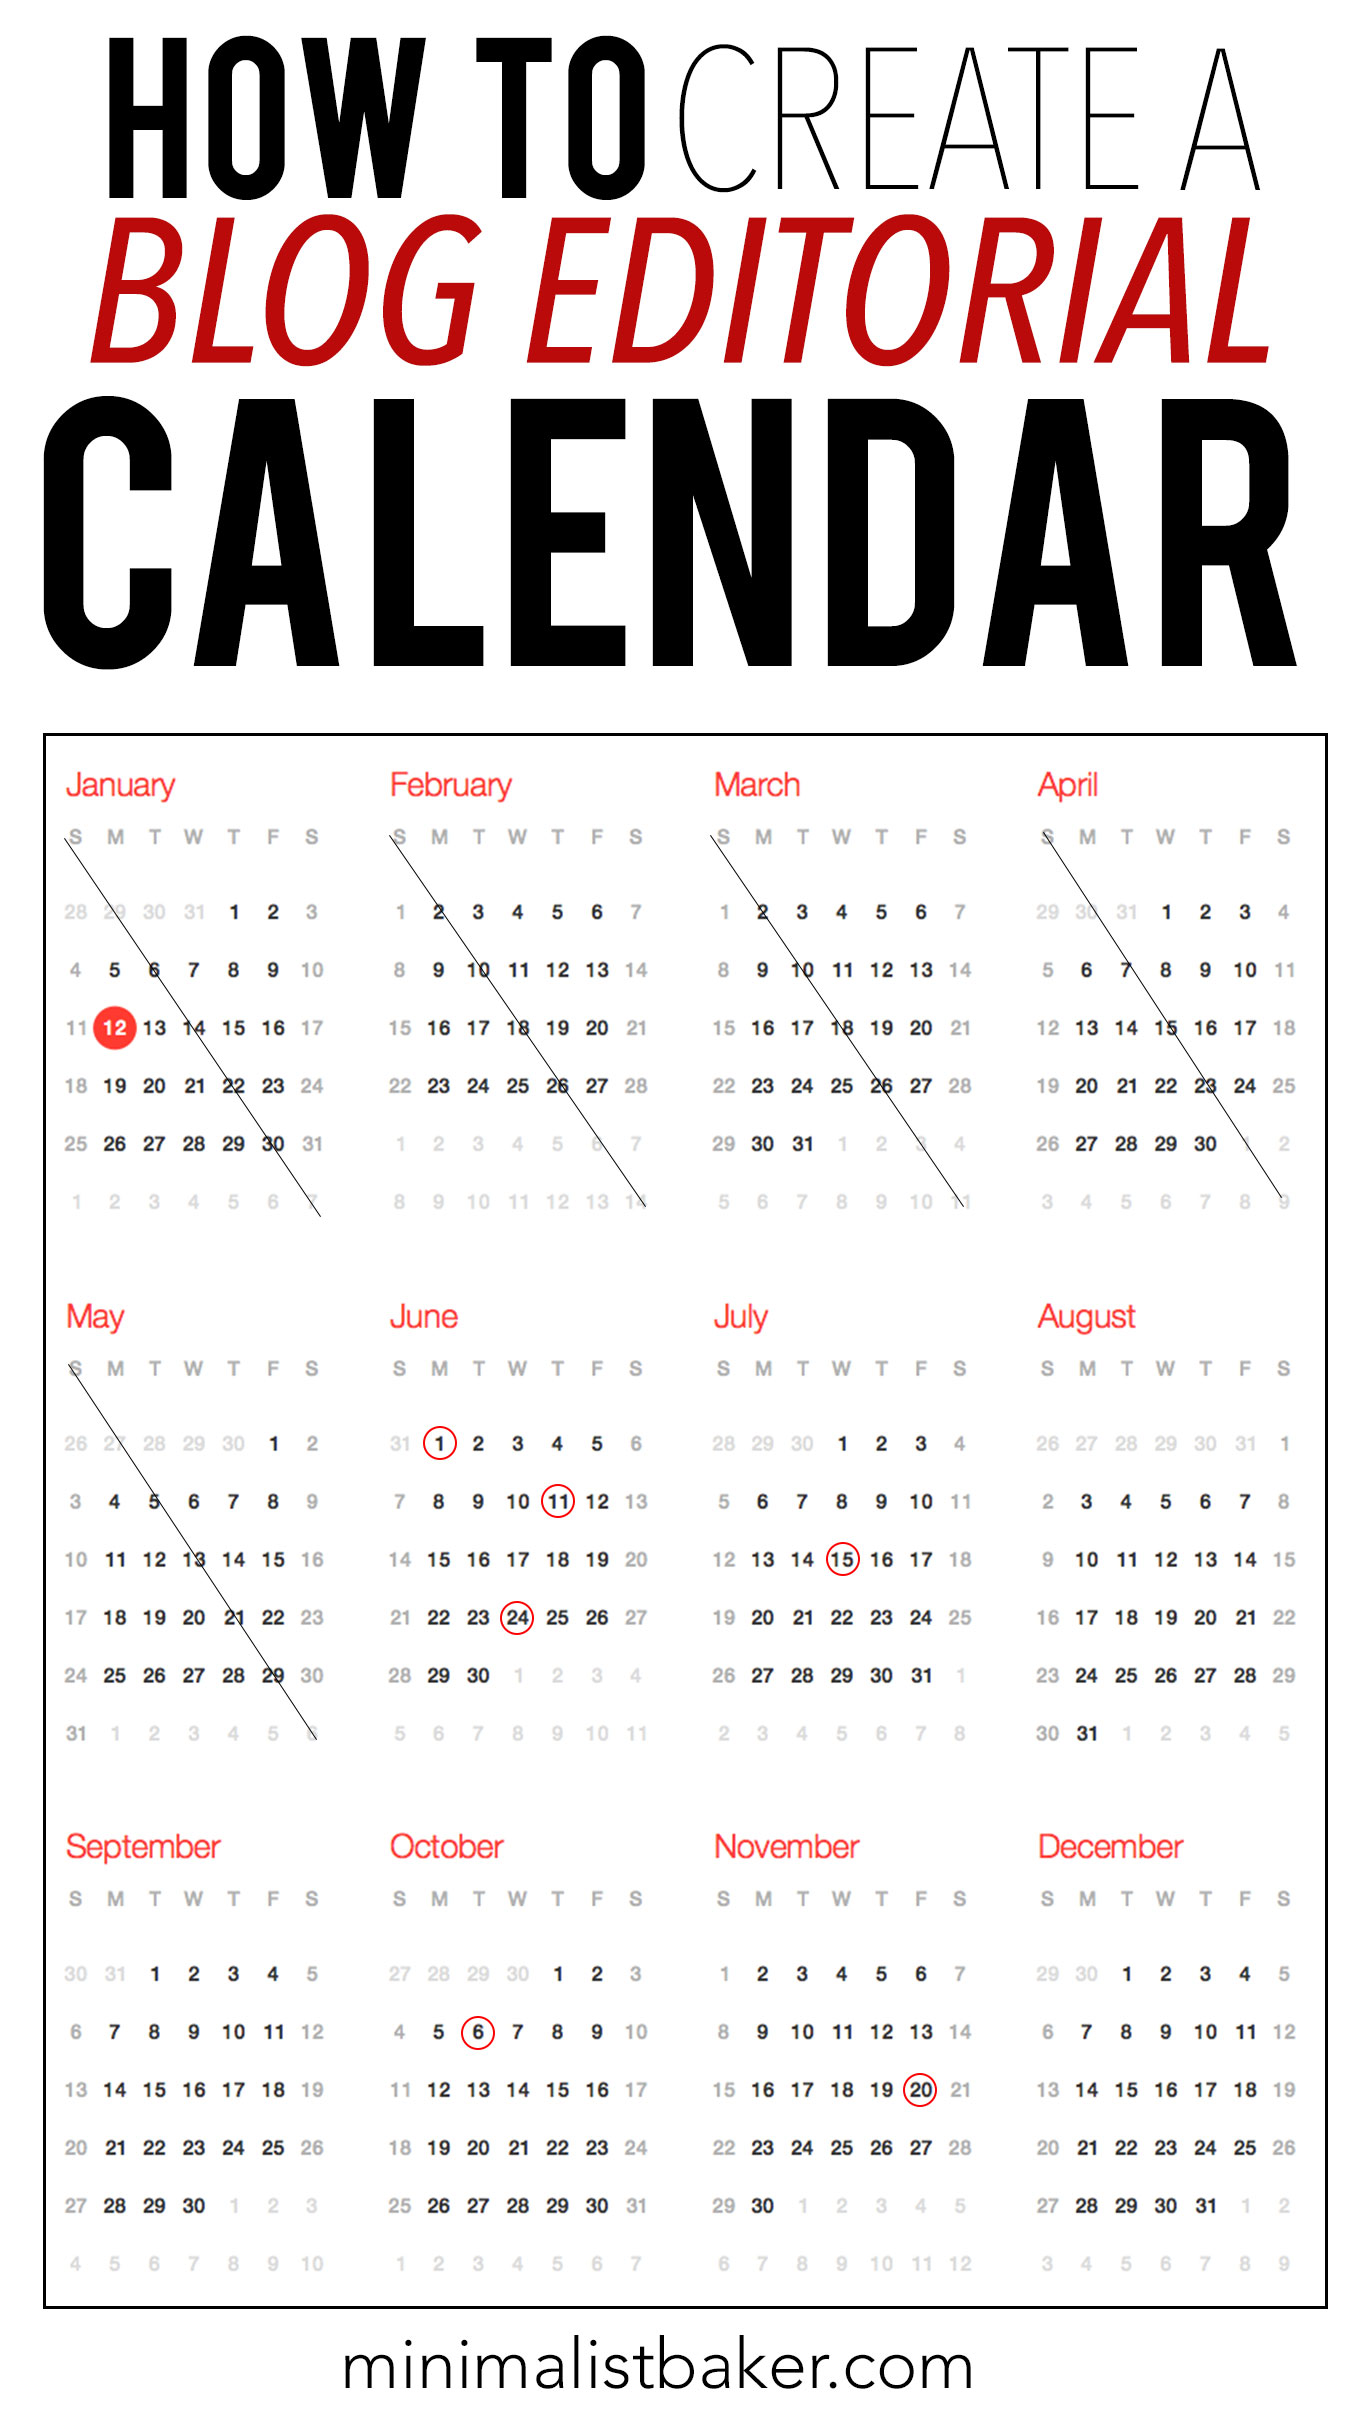 blog editorial calendar tips